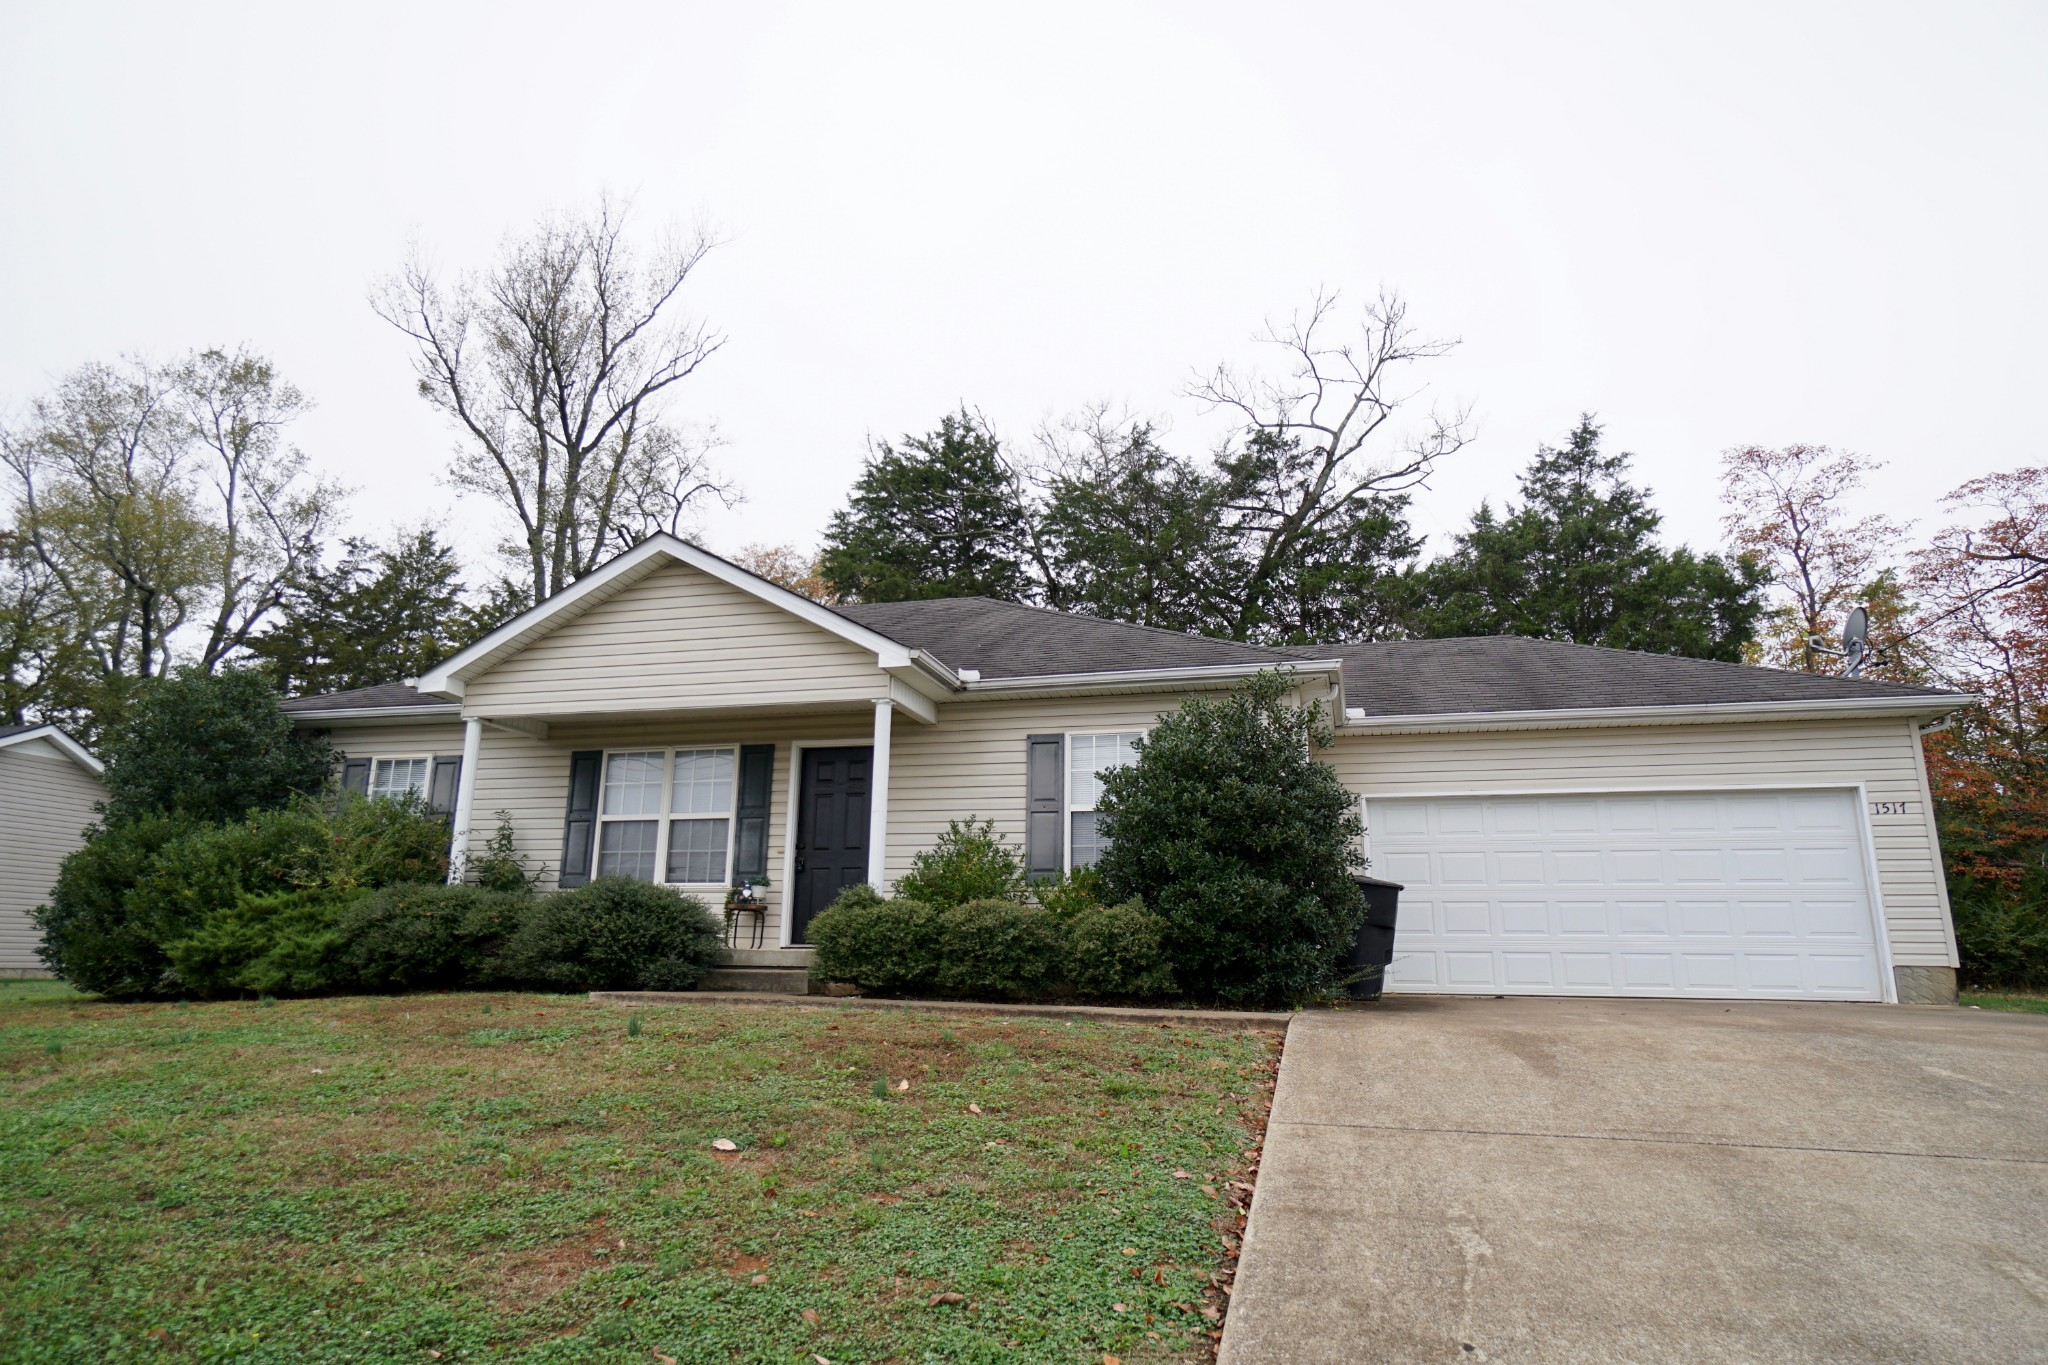 """Come make this house your home as it sits just minutes from several restaurants, plenty of shopping, and major interstates. Please no showings until November 1st. New HVAC installed June 2019, new laminate flooring installed Sept 2019. Home inspections are welcome on a """"pass or fail"""" basis only. Thanks for viewing!"""